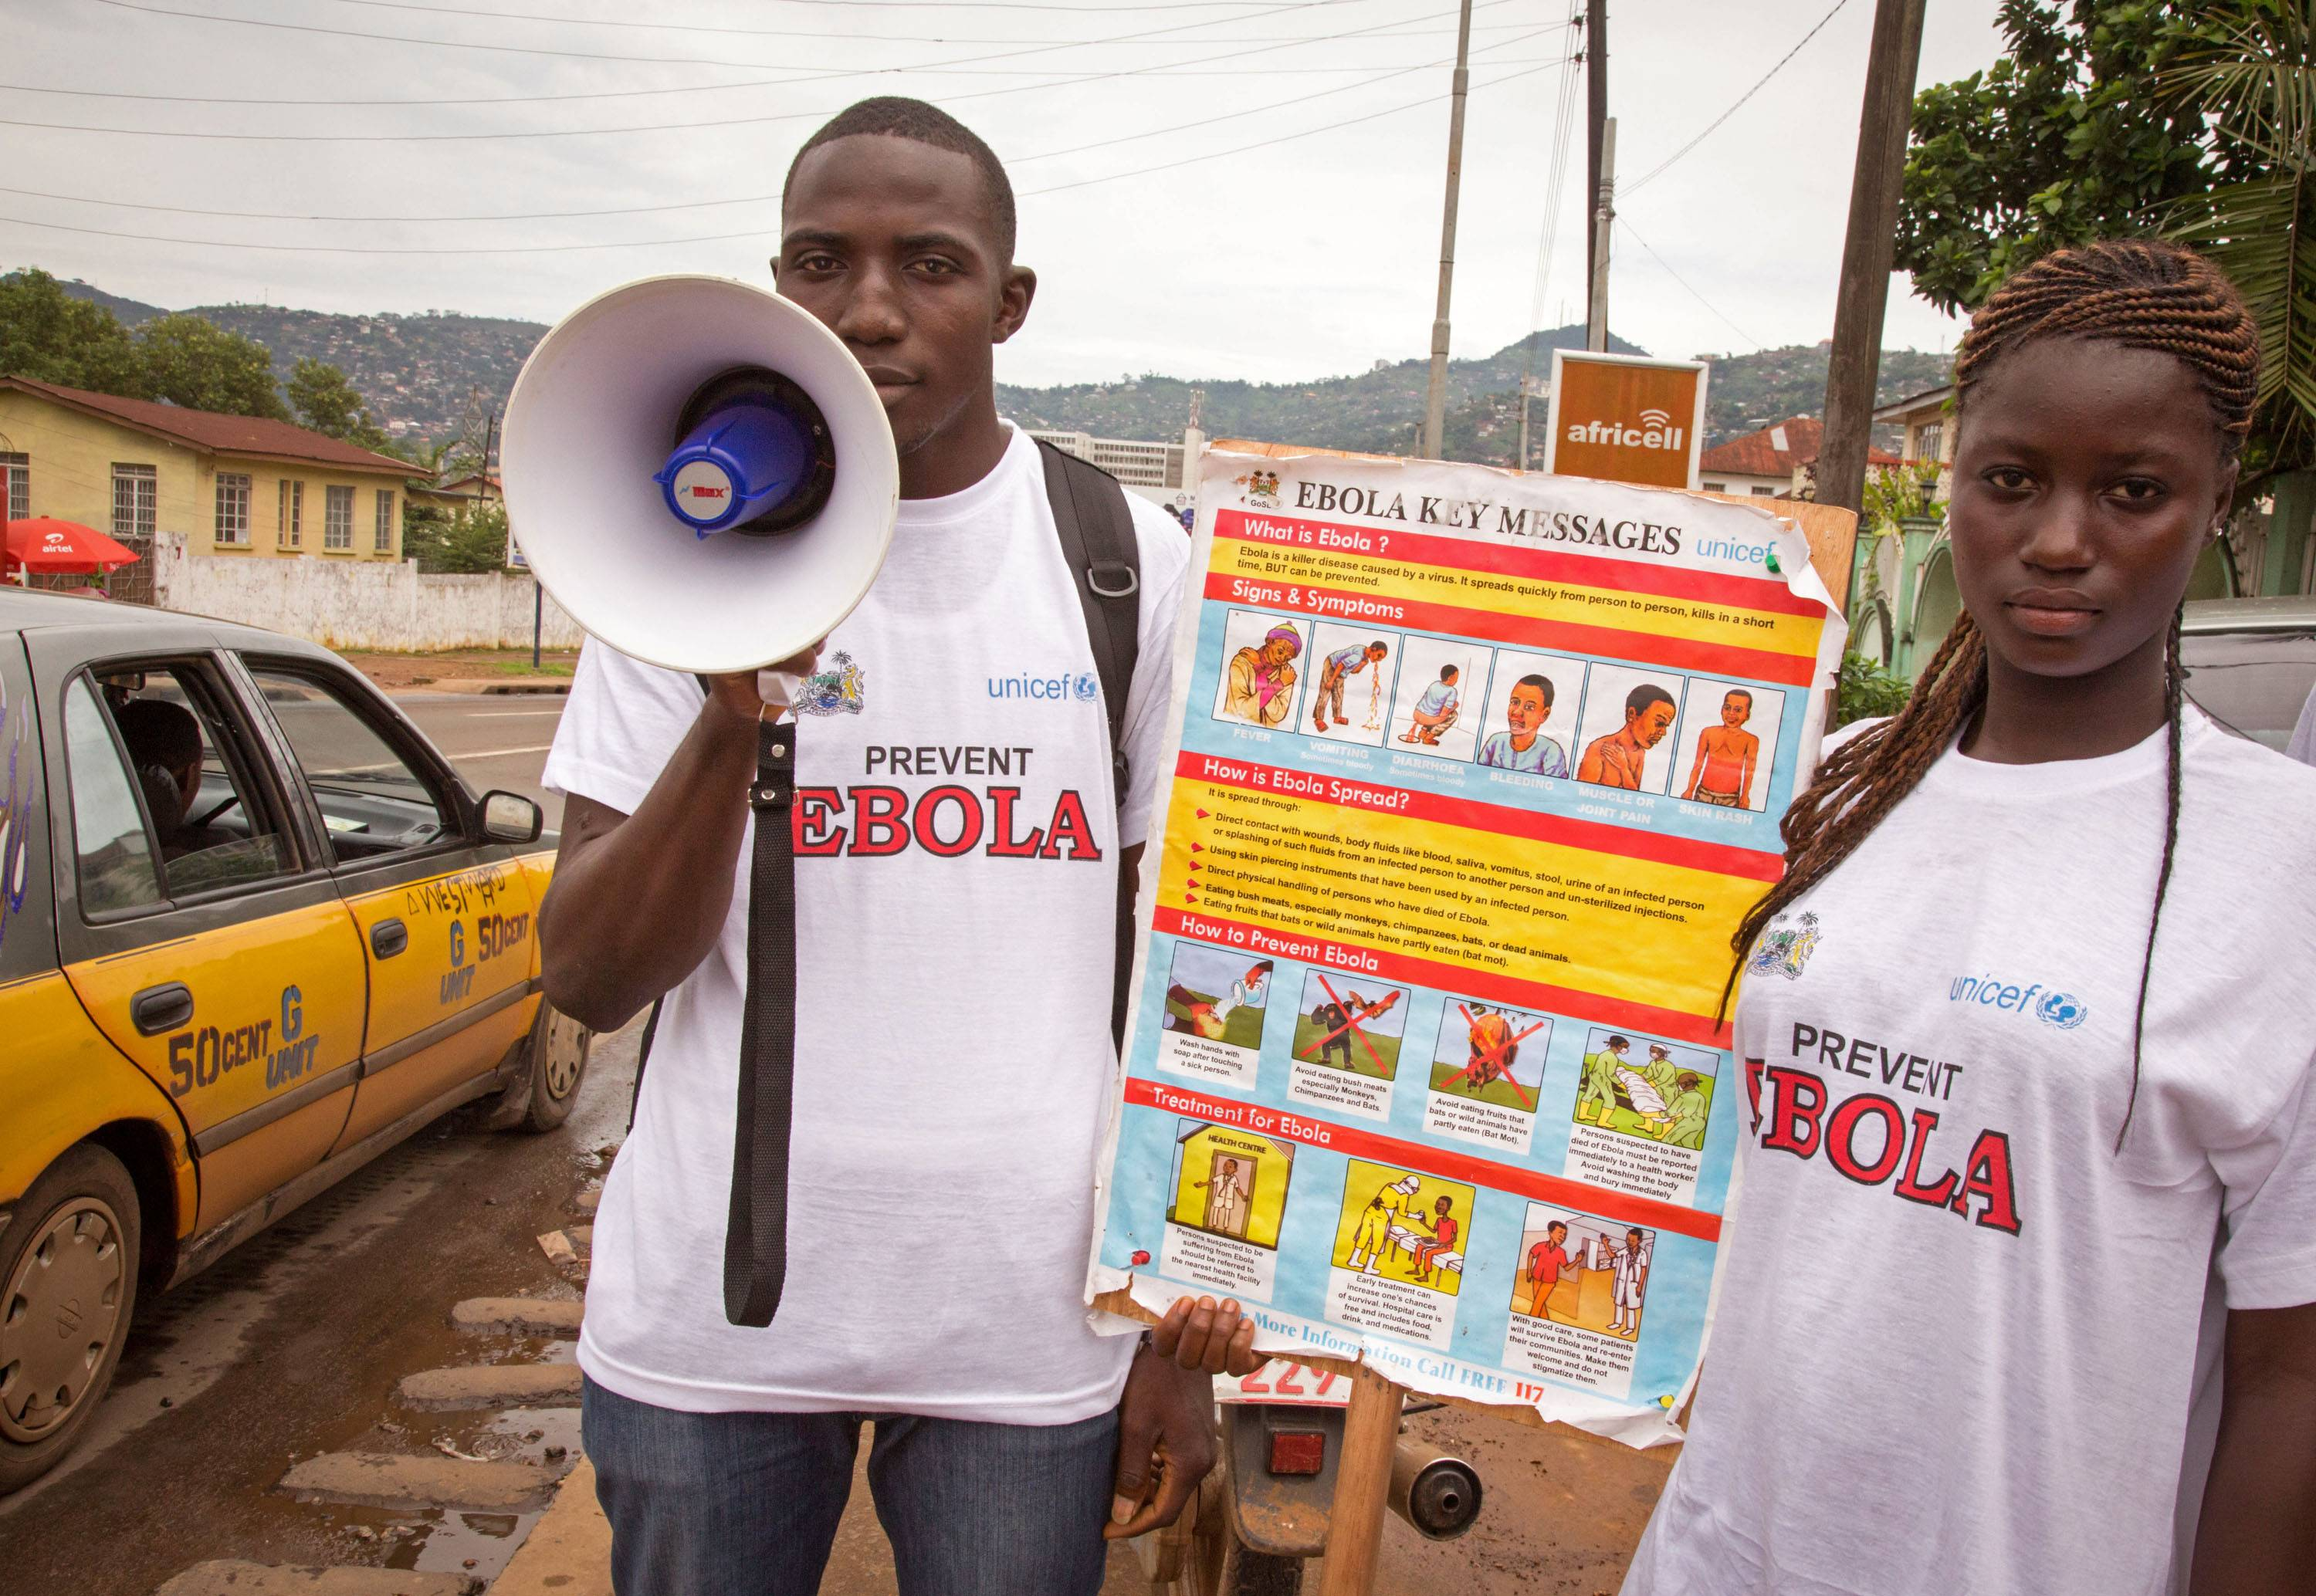 A man and woman taking part in a Ebola prevention campaign holds a placard with an Ebola prevention information message in the city of Freetown, Sierra Leone, Wednesday, Aug. 6, 2014.